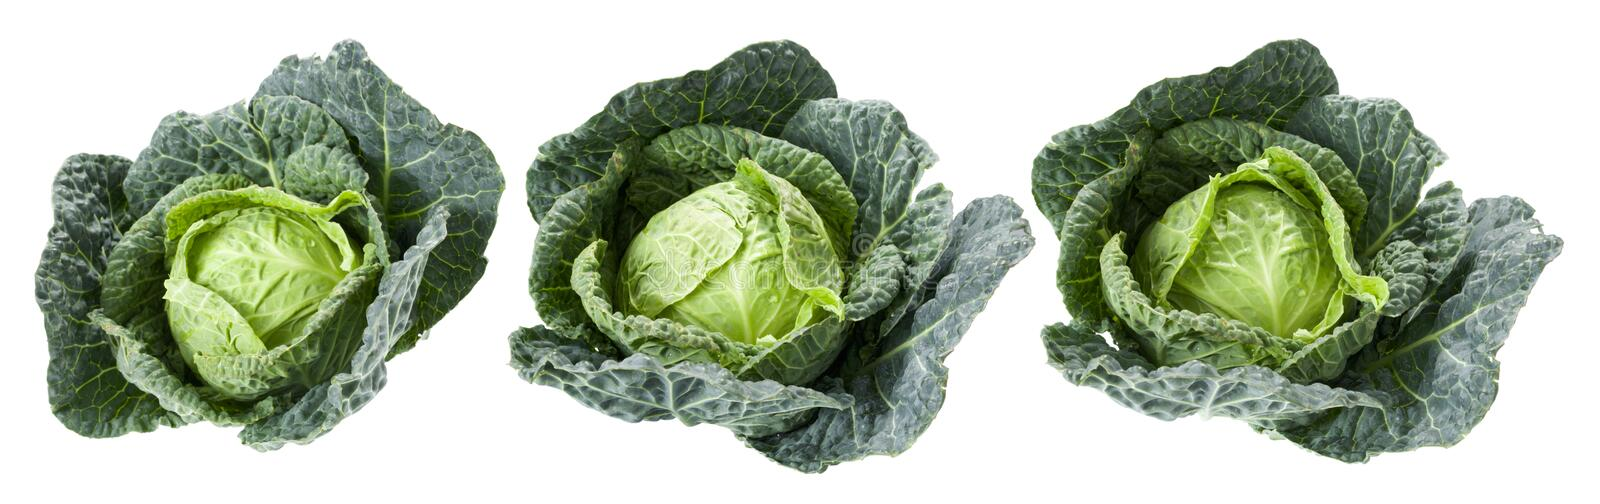 Savoy cabbages royalty free stock photos